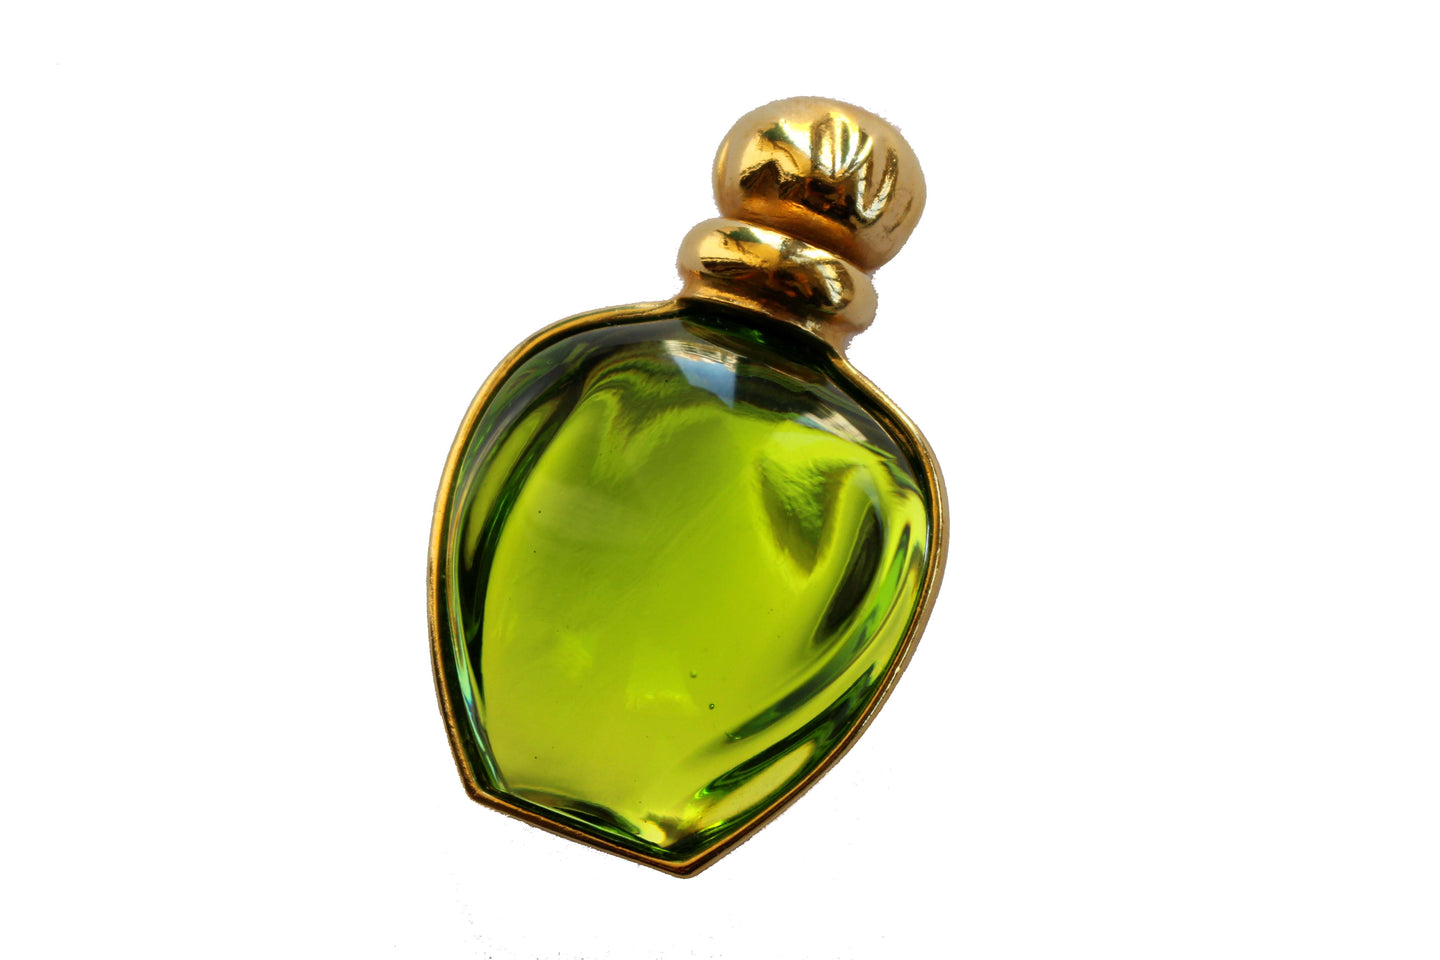 CHRISTIAN DIOR Poison brooch